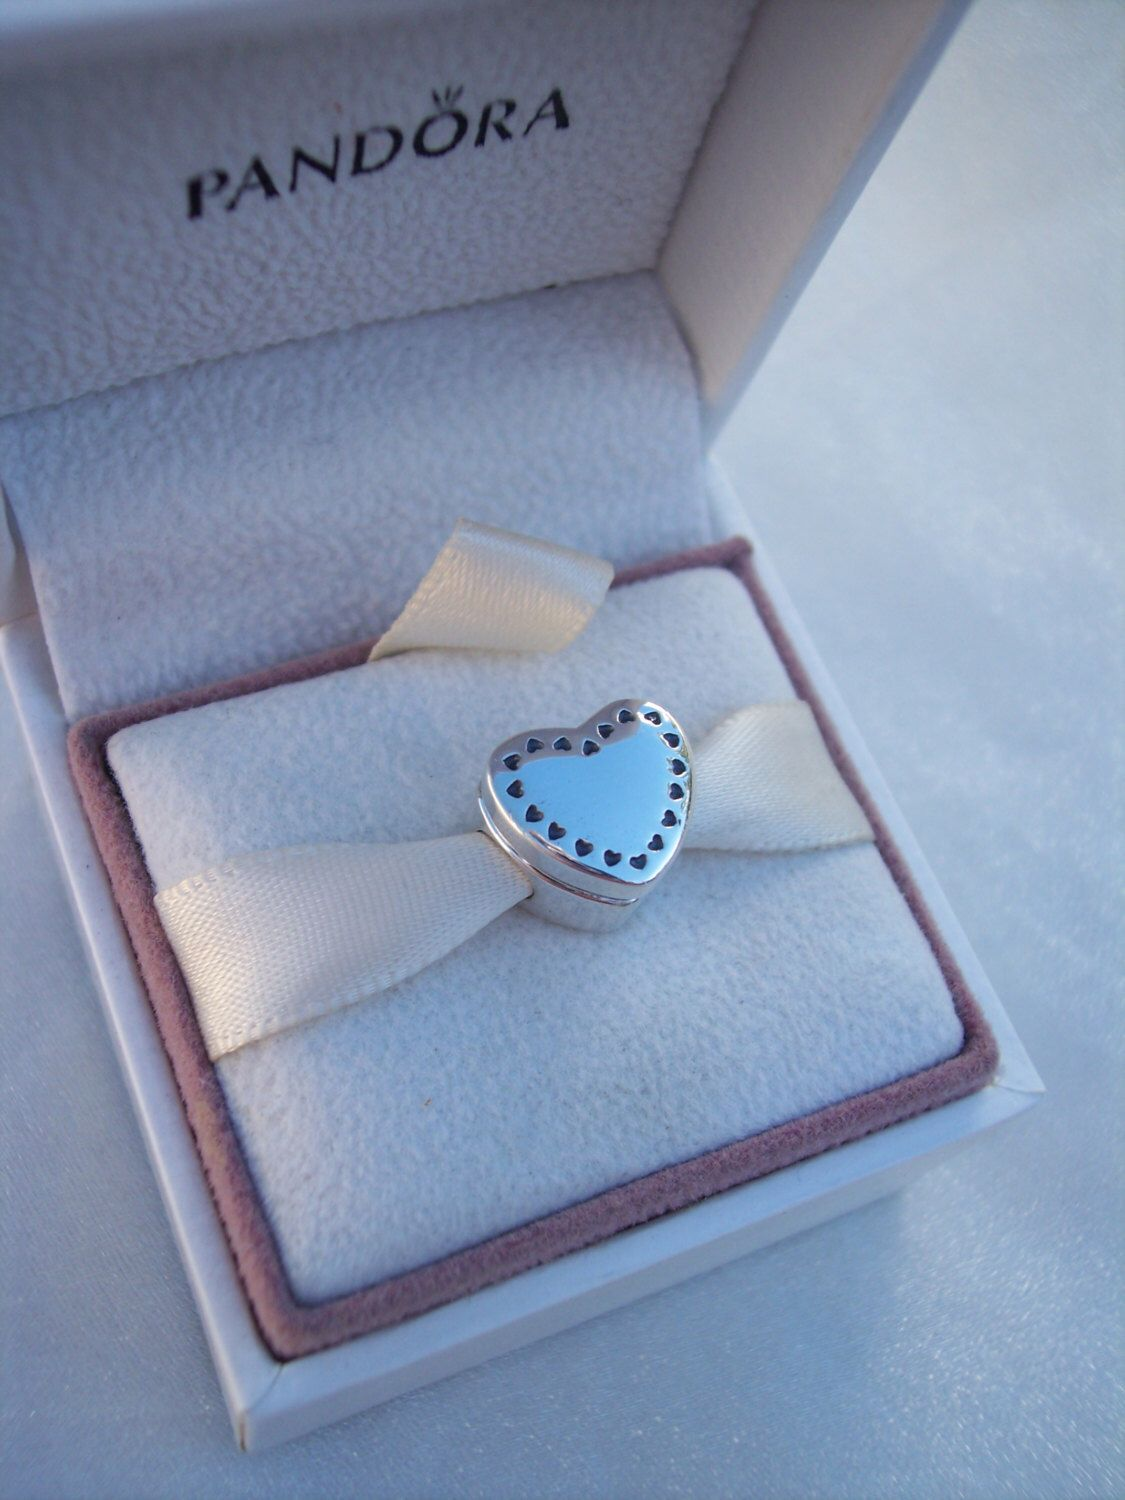 Authentic pandora gift from the heart 14k clear cz